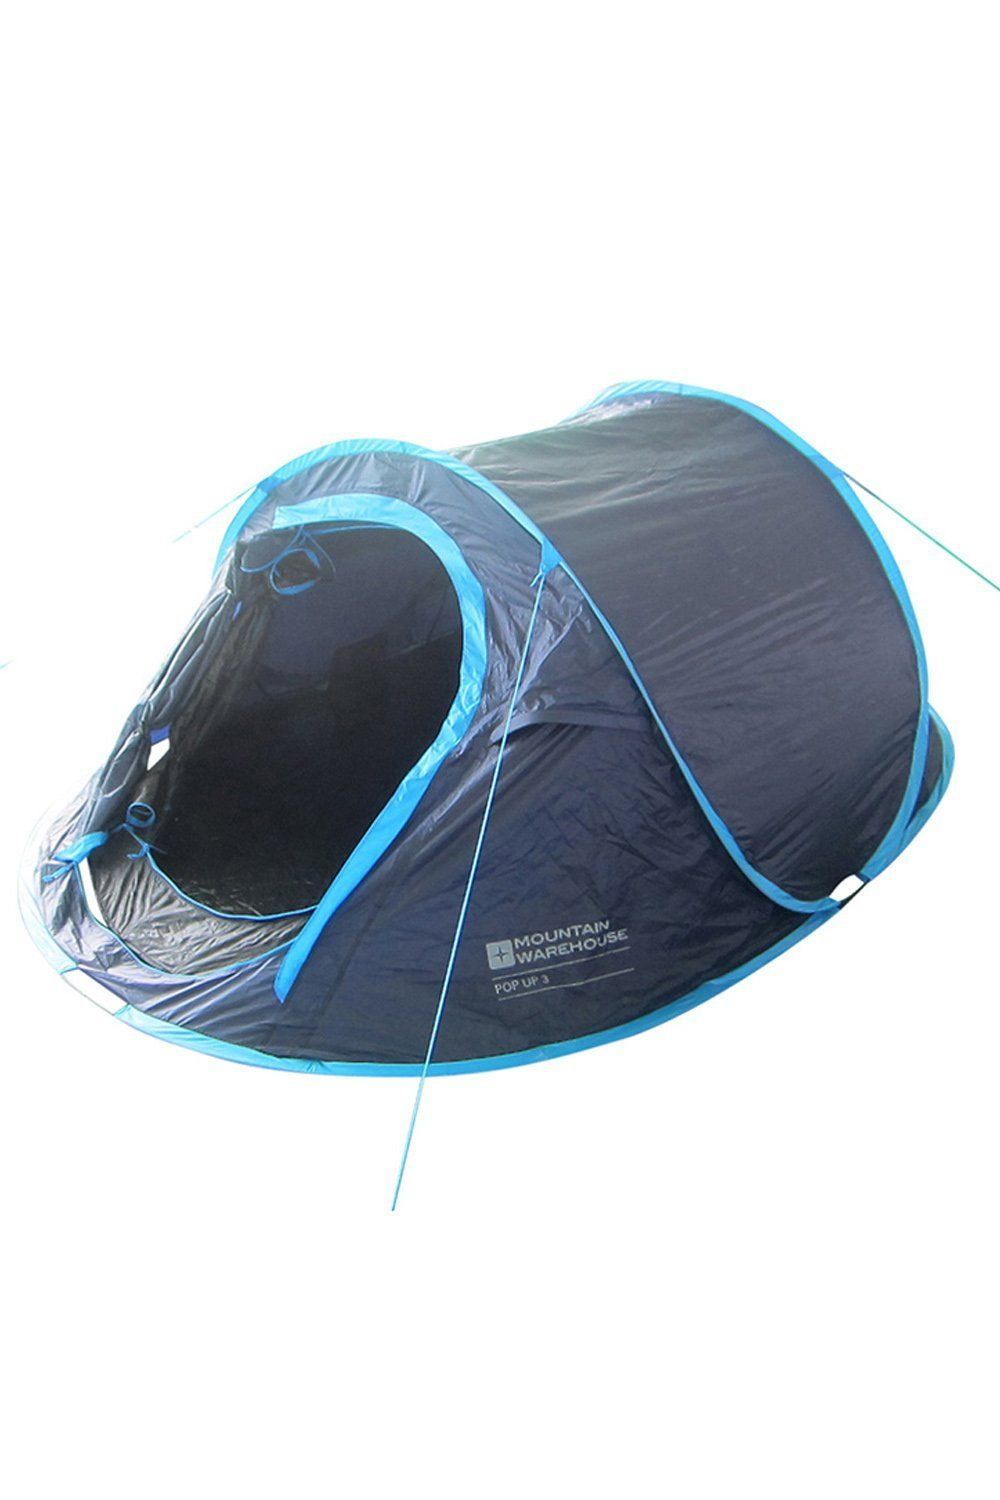 Mountain Warehouse Pop Up Double Skin 3 Man Tent u003eu003eu003e See this great image  sc 1 st  Pinterest & Mountain Warehouse Pop Up Double Skin 3 Man Tent u003eu003eu003e See this ...